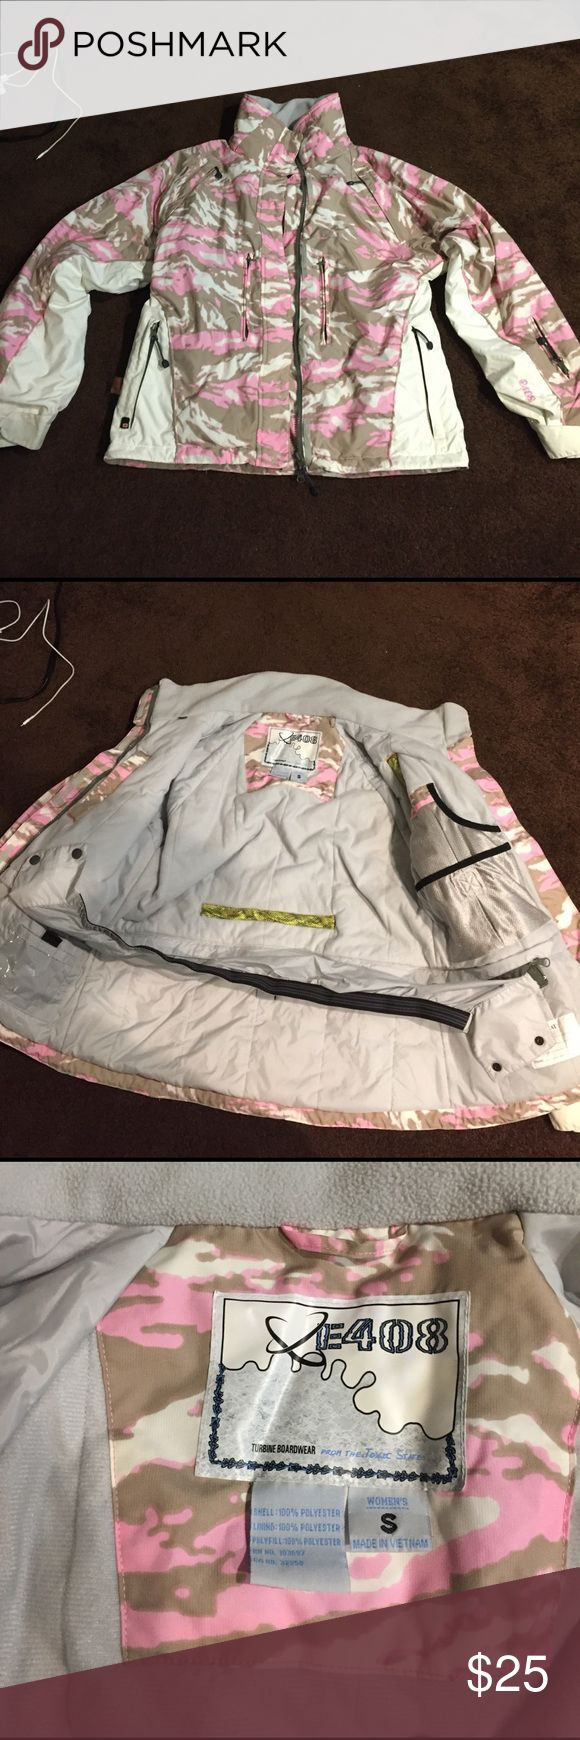 Pink camo jacket Super warm pink camo jacket. I wore this twice in Tahoe. It's pretty old but it's rarely been worn and is in great condition. Lots of pockets and room in the arms. It says small but it's more of a medium. Open to offers :) E408 Jackets & Coats Utility Jackets